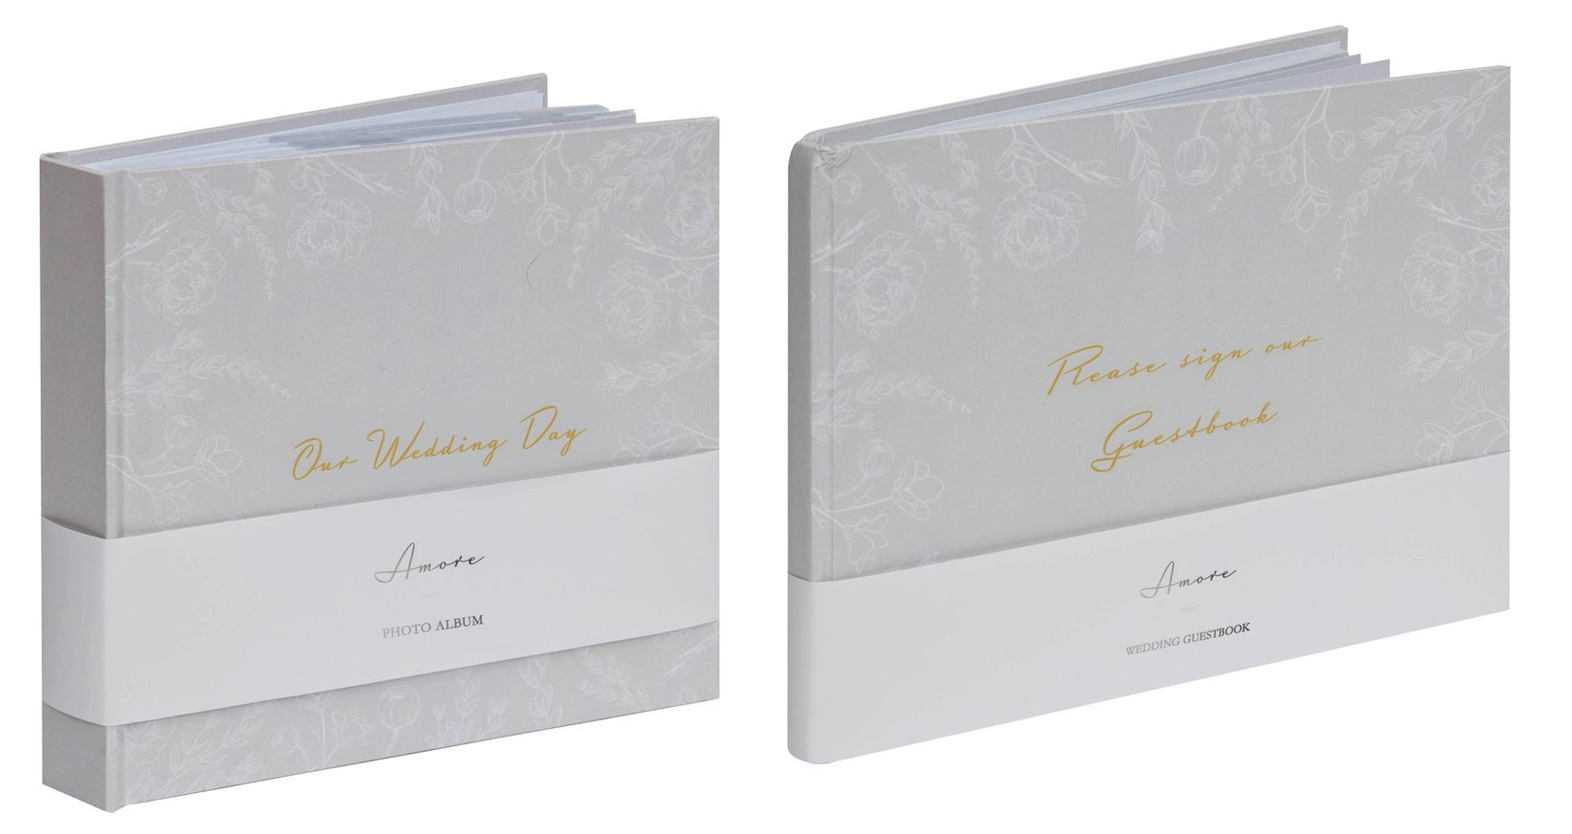 Matching Our Wedding Day Slip In Photo Album 6x4 And Guest Book Set Grey Floral 5060455444618 Ebay